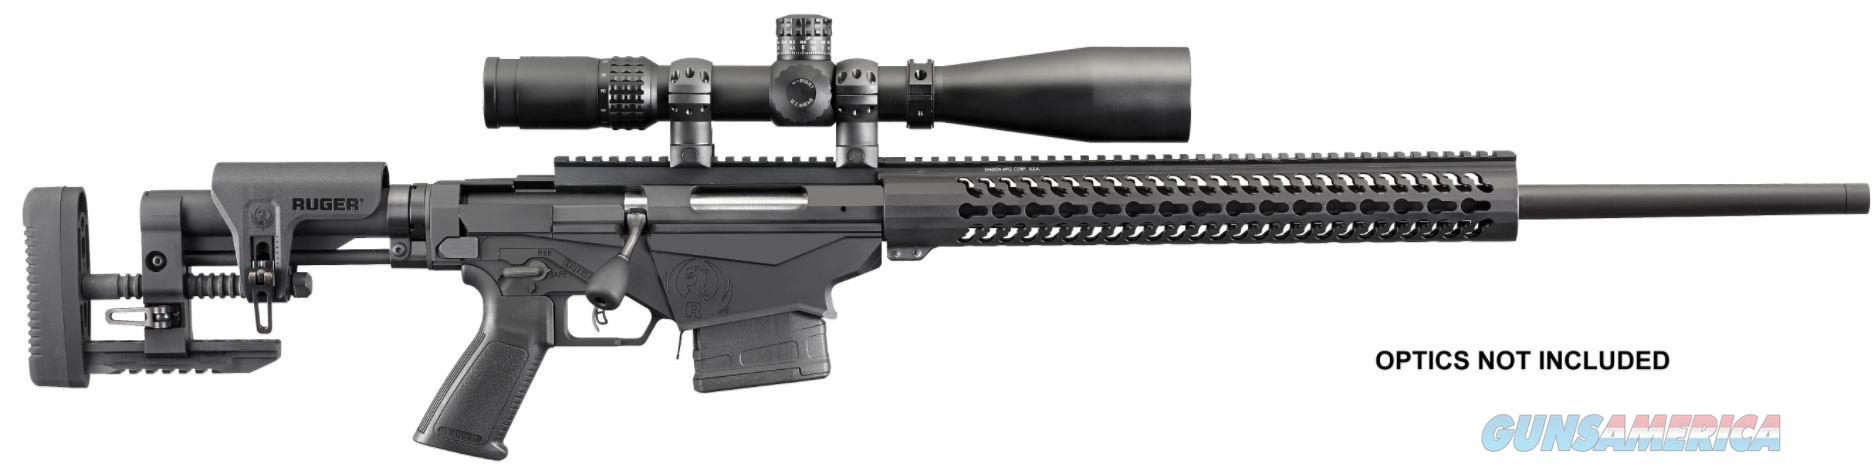 "Ruger Precision Rifle .308 20"" 10+1 Folding Adjustable Stock - New in Box  Guns > Rifles > Ruger Rifles > Precision Rifle Series"